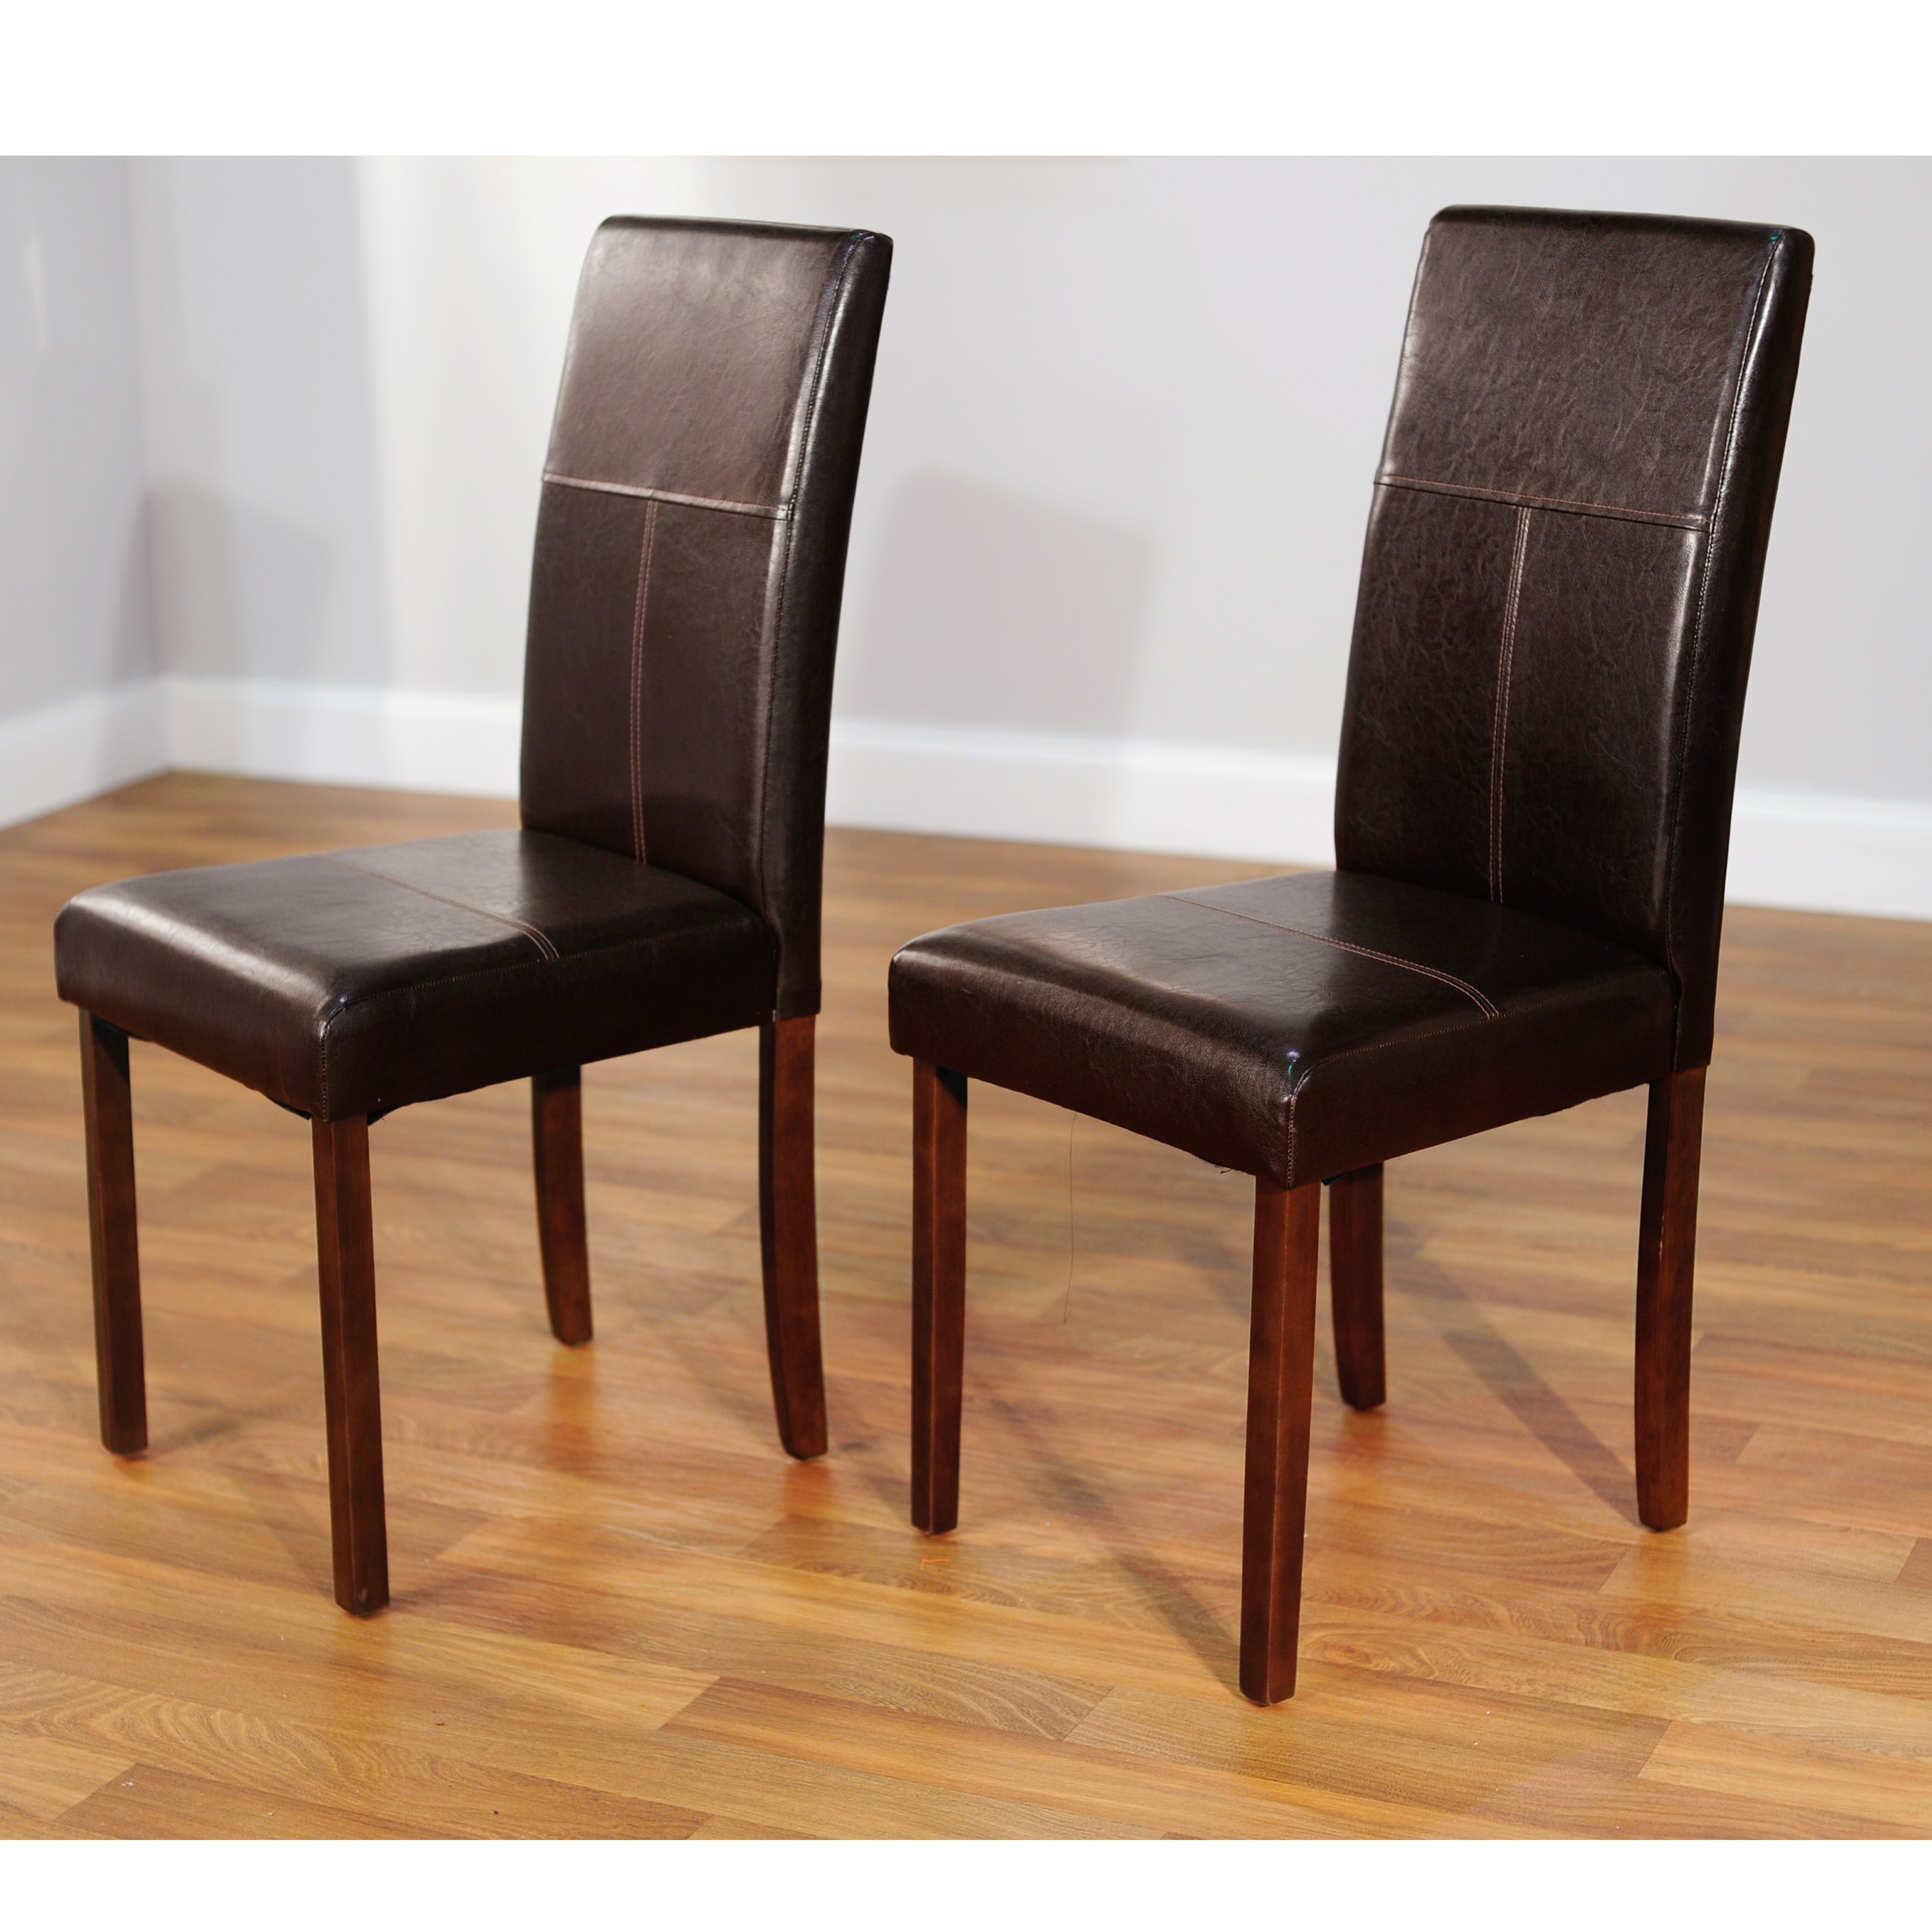 Dining Room Parson Chairs: Simple Living Bettega Parson Chair (Set Of 2)